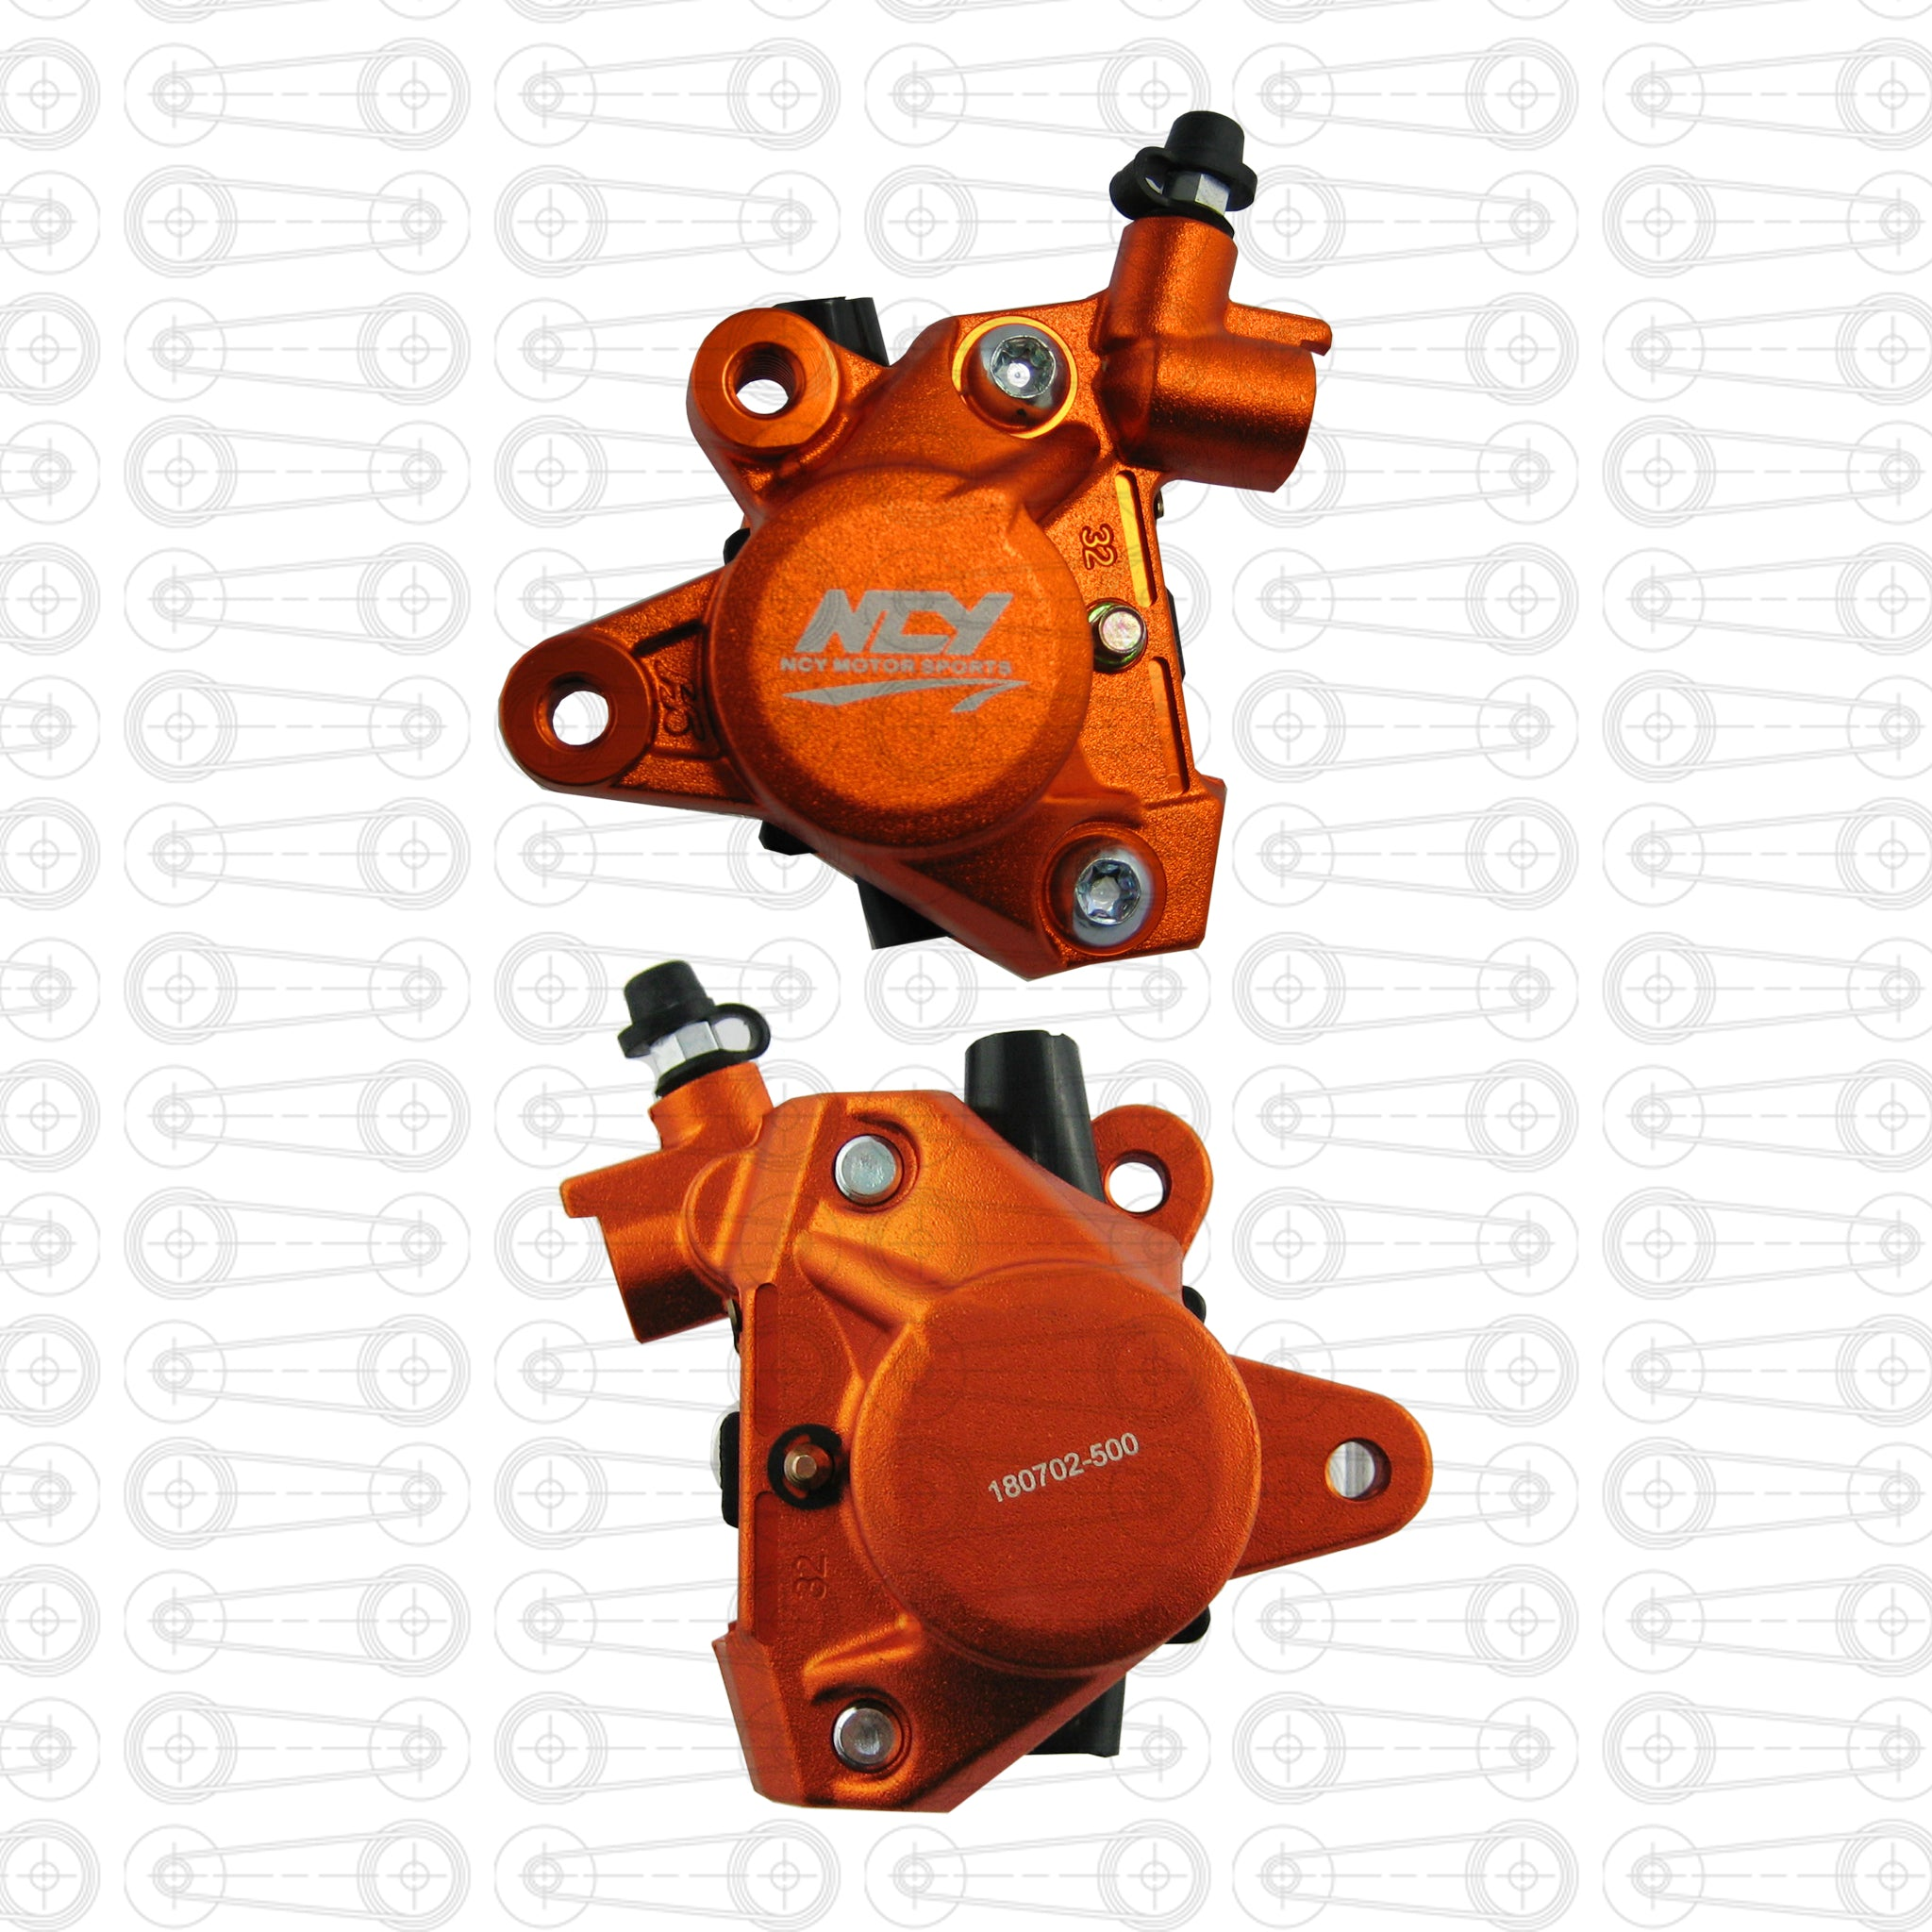 NCY - BRAKE CALIPER (Orange)